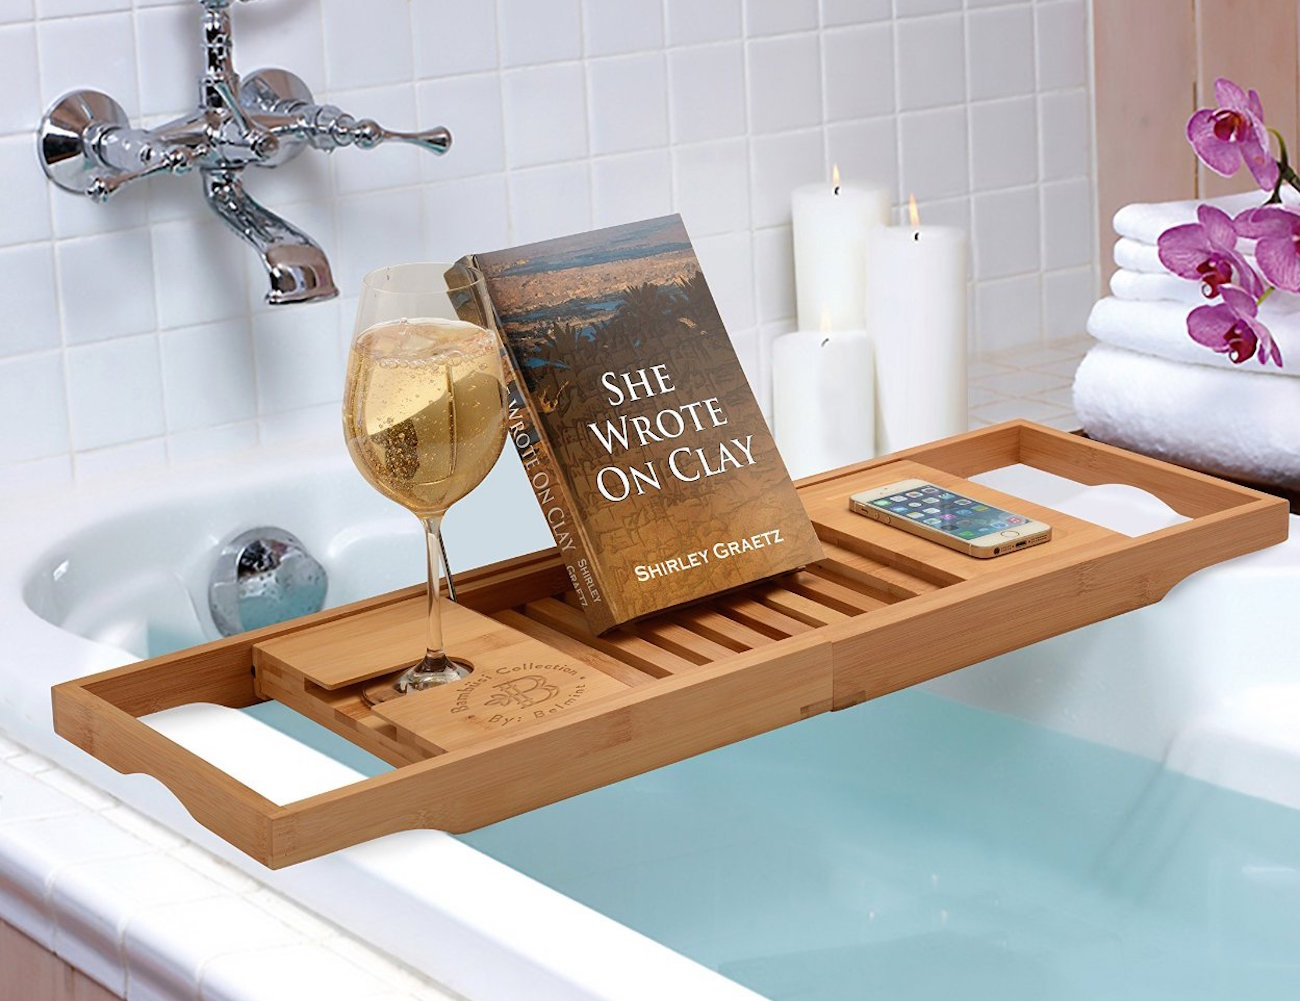 Over The Tub Bathtub Caddy - Bathtub Ideas